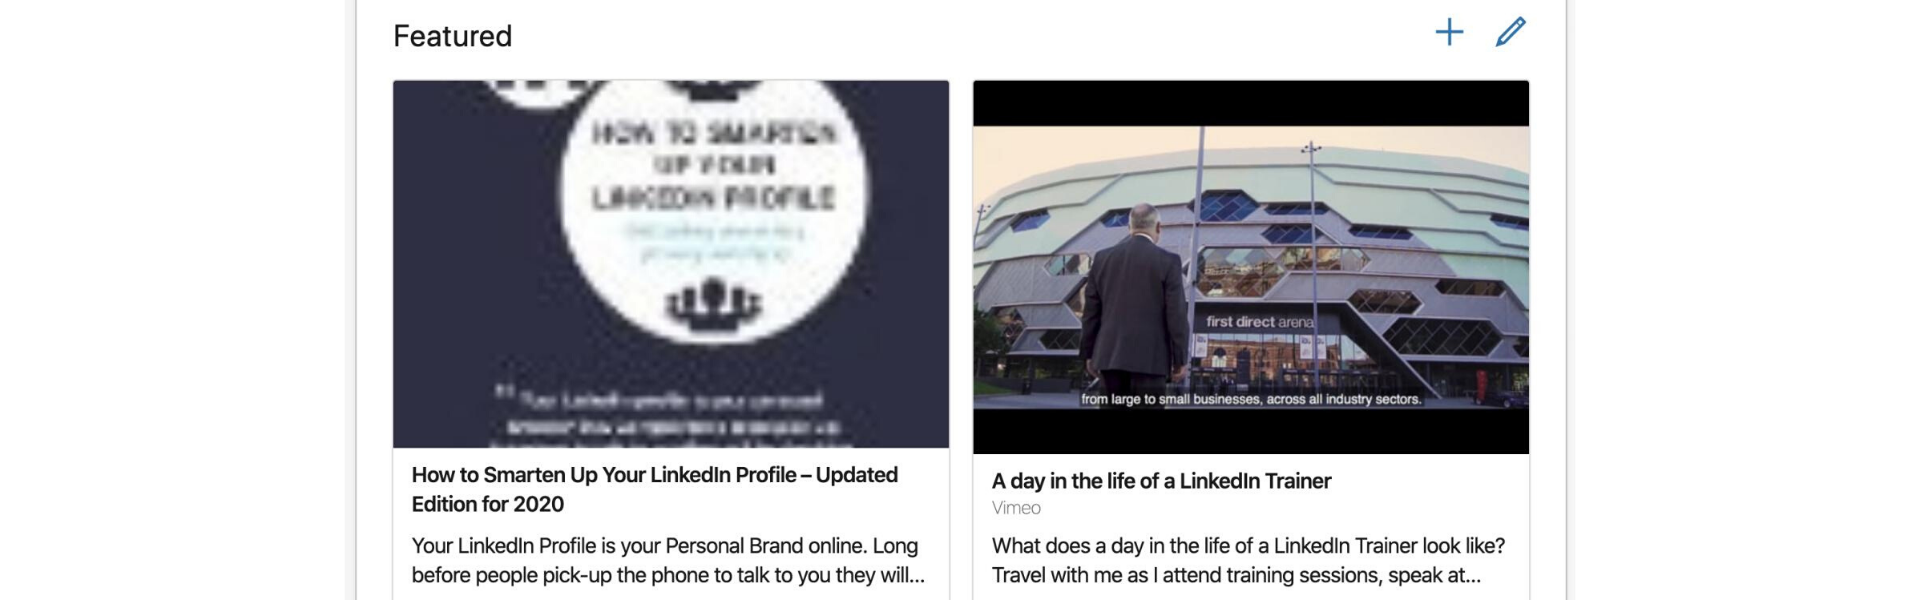 New LinkedIn Profile Featured section to improve your LinkedIn Profile